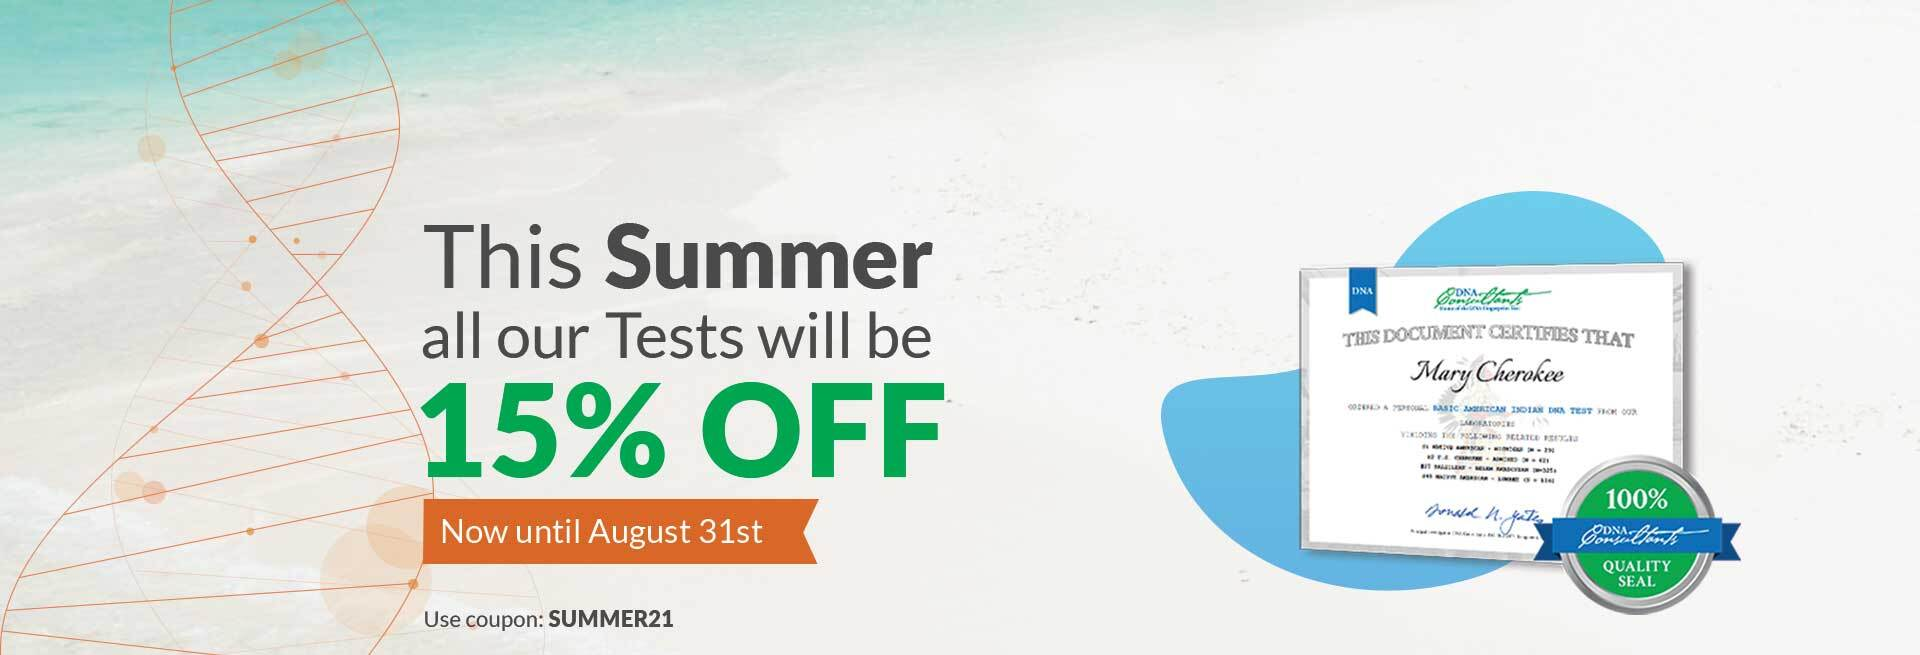 Use coupon: SUMMER21 - ORDER NOW